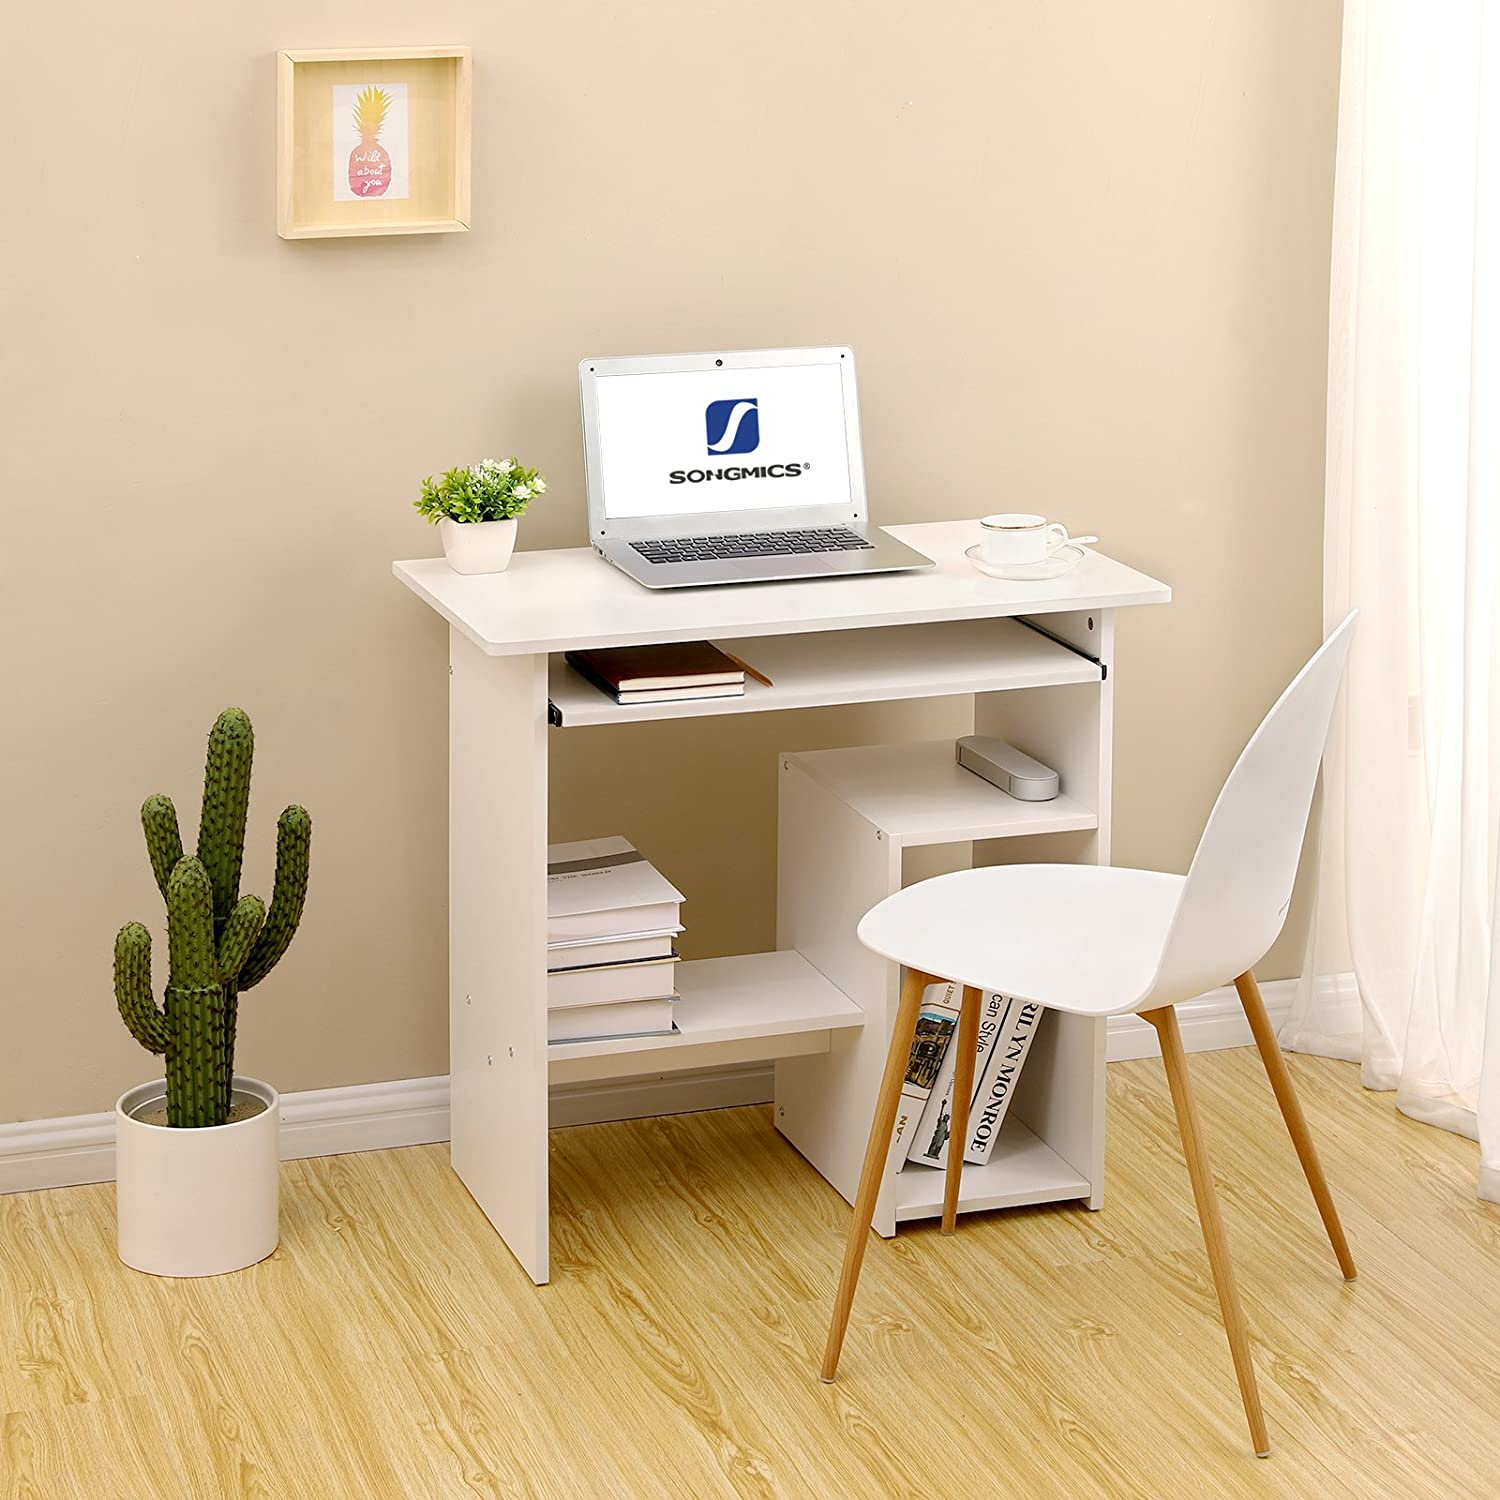 Songmics Computer Desk Small Study Workstation Writing Desk With Sliding